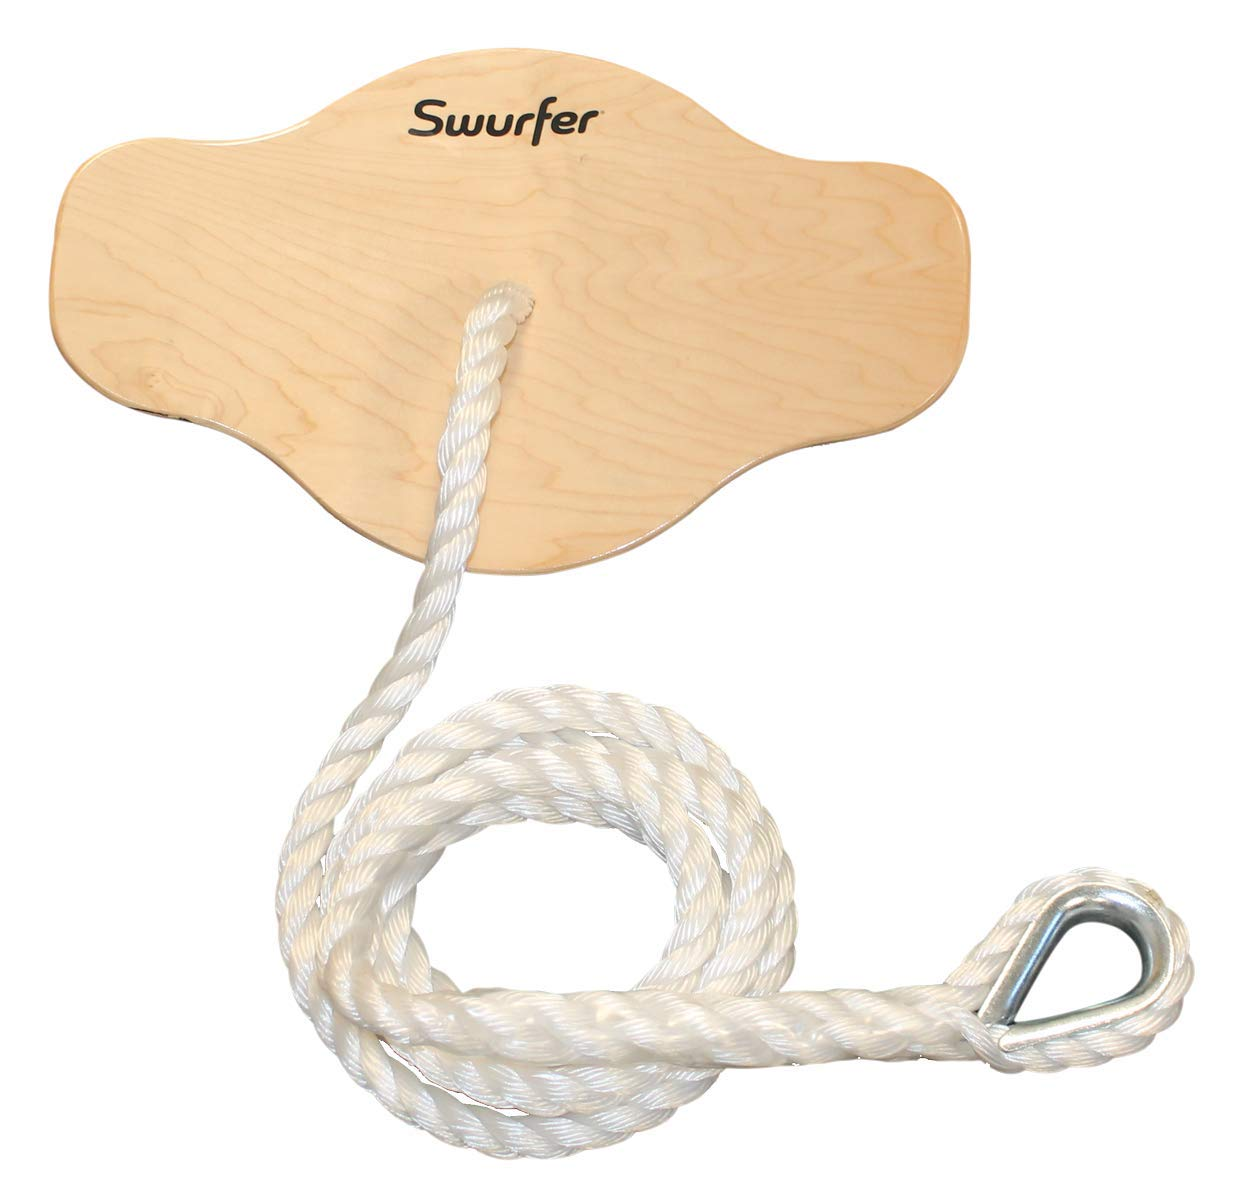 Swurfer Swift - Maple Wood Disc Swing for Kids Ages 4 and Up, Holds up to 150 Pounds - Includes 18'' Curved Seat Swing with Heavy Duty Braided Rope by Swurfer